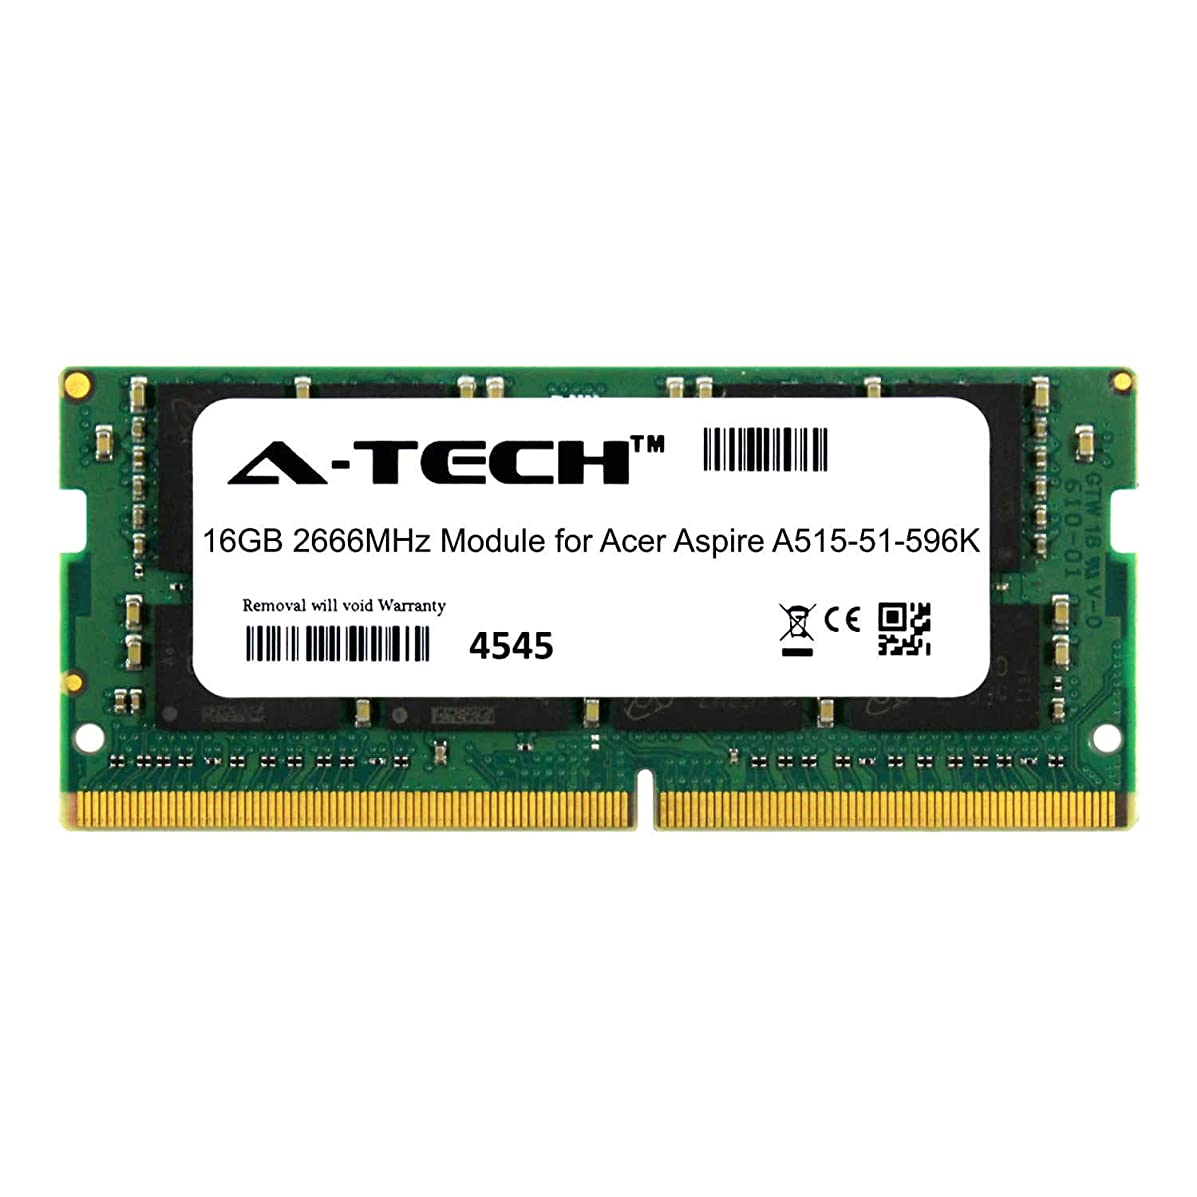 A-Tech 16GB Module for Acer Aspire A515-51-596K Laptop & Notebook Compatible DDR4 2666Mhz Memory Ram (ATMS267433A25832X1)